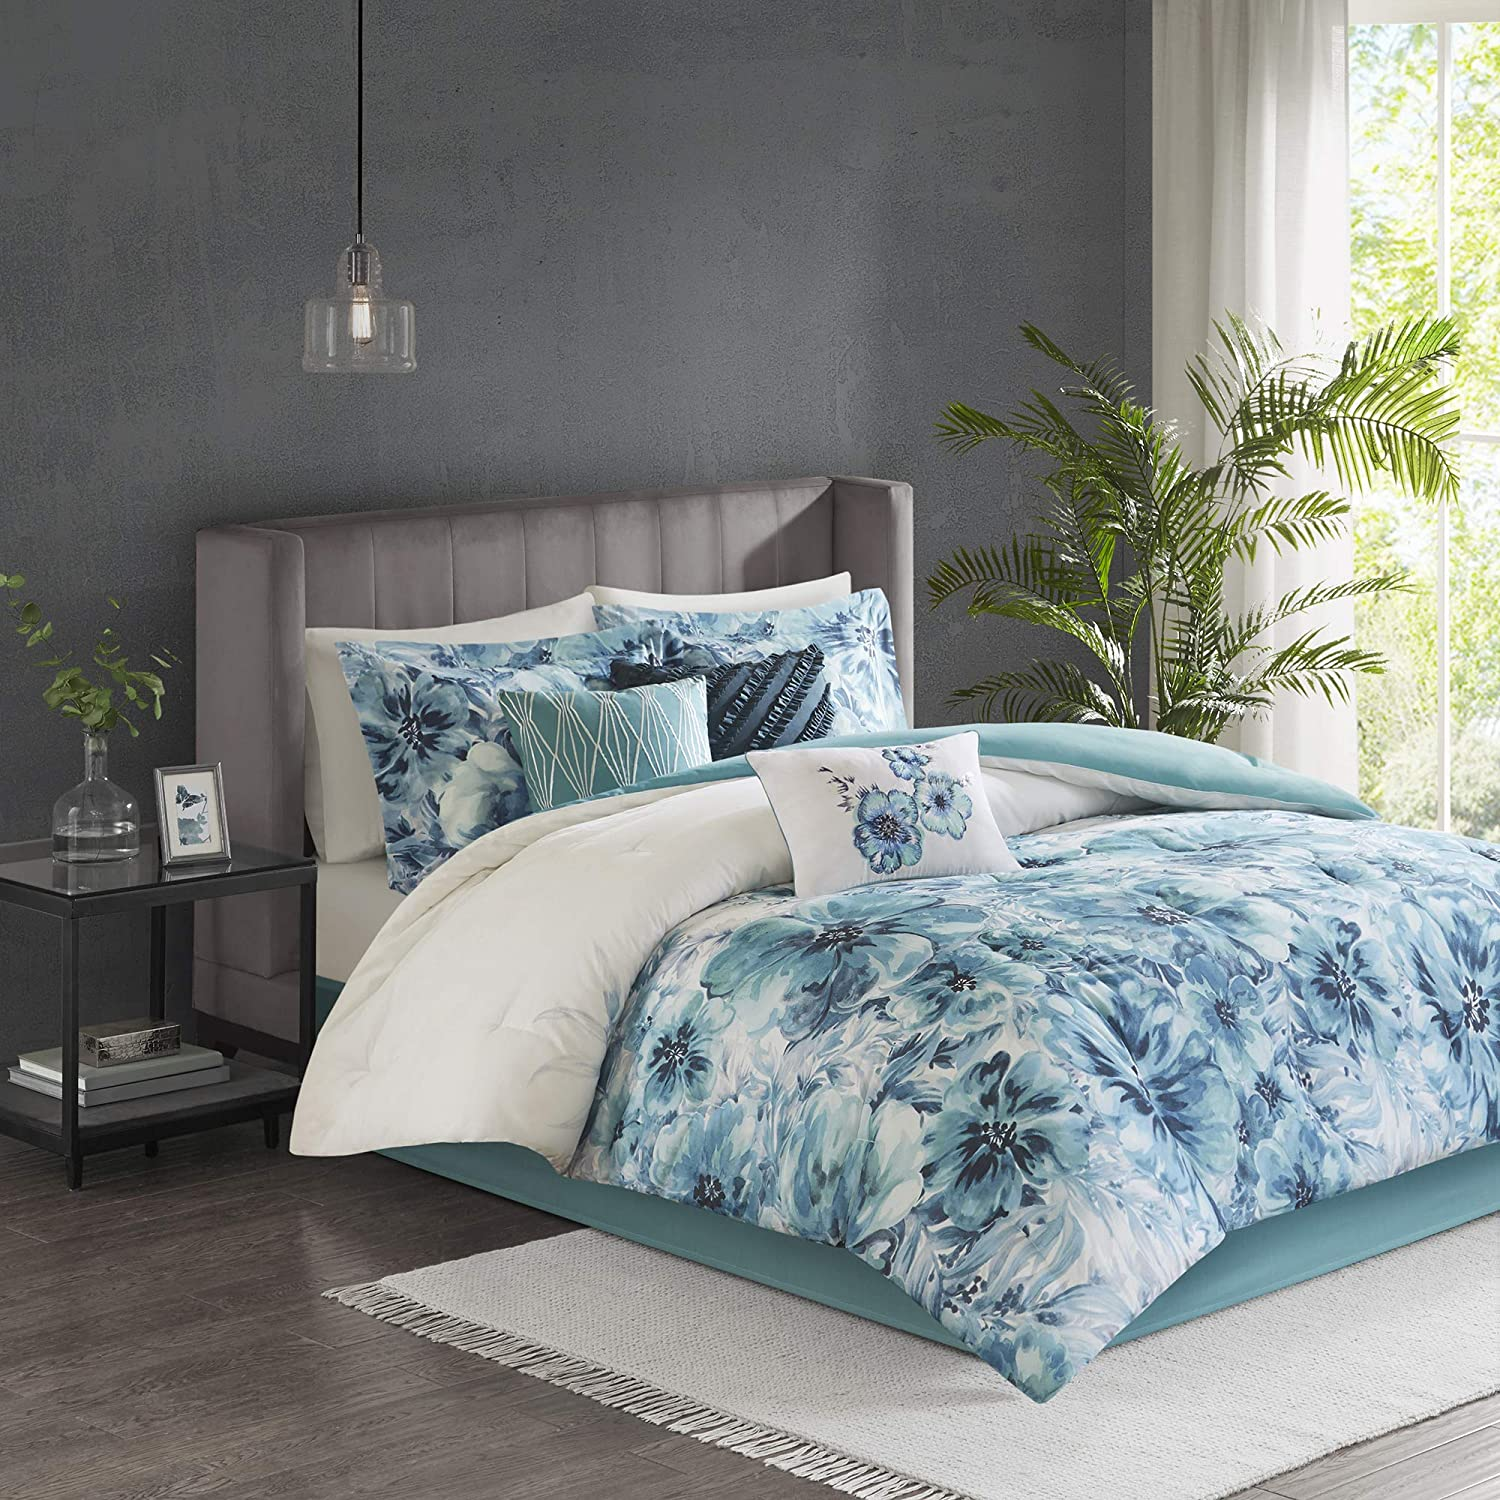 Madison Park Enza Comforter Reversible Floral Flower Watercolor Print Cotton Percale Embroidered Ruffle Pleated Pillow Soft Down Alternative Hypoallergenic All Season Bedding-Set, Cal King, Teal